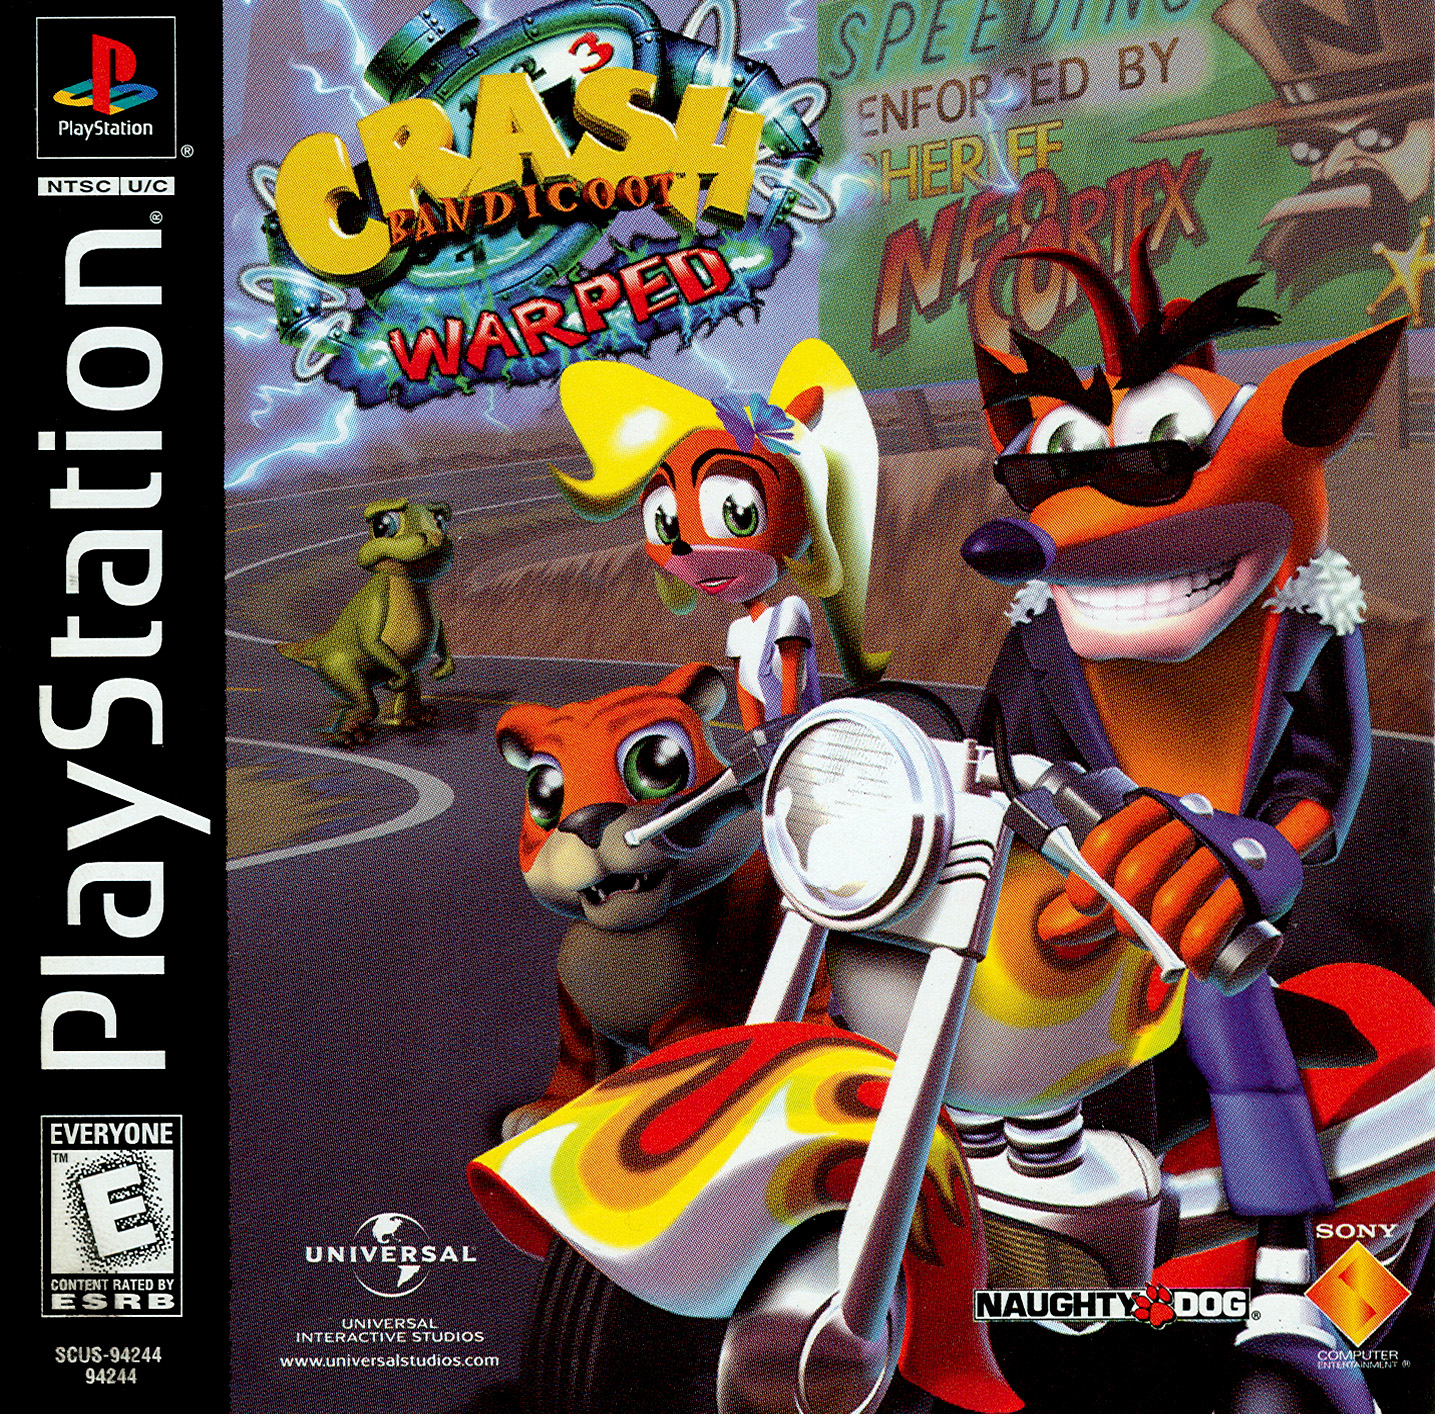 Game of the month november 2016 crash bandicoot: warped.